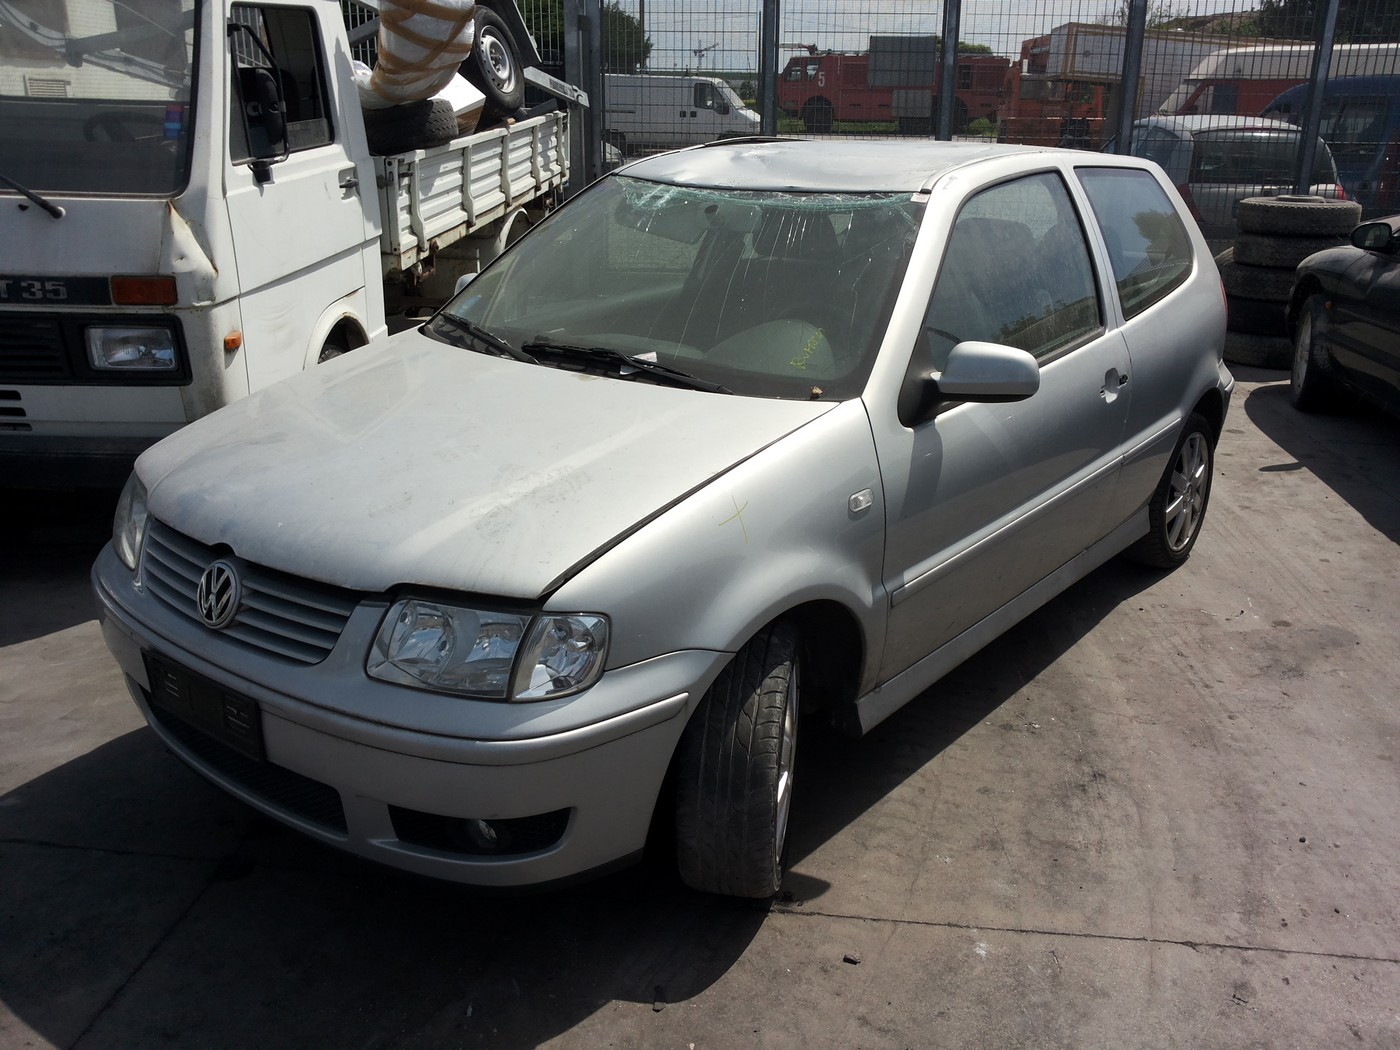 Volkswagen polo 6n2 3usi 1.4 16v ahw an fab.2000